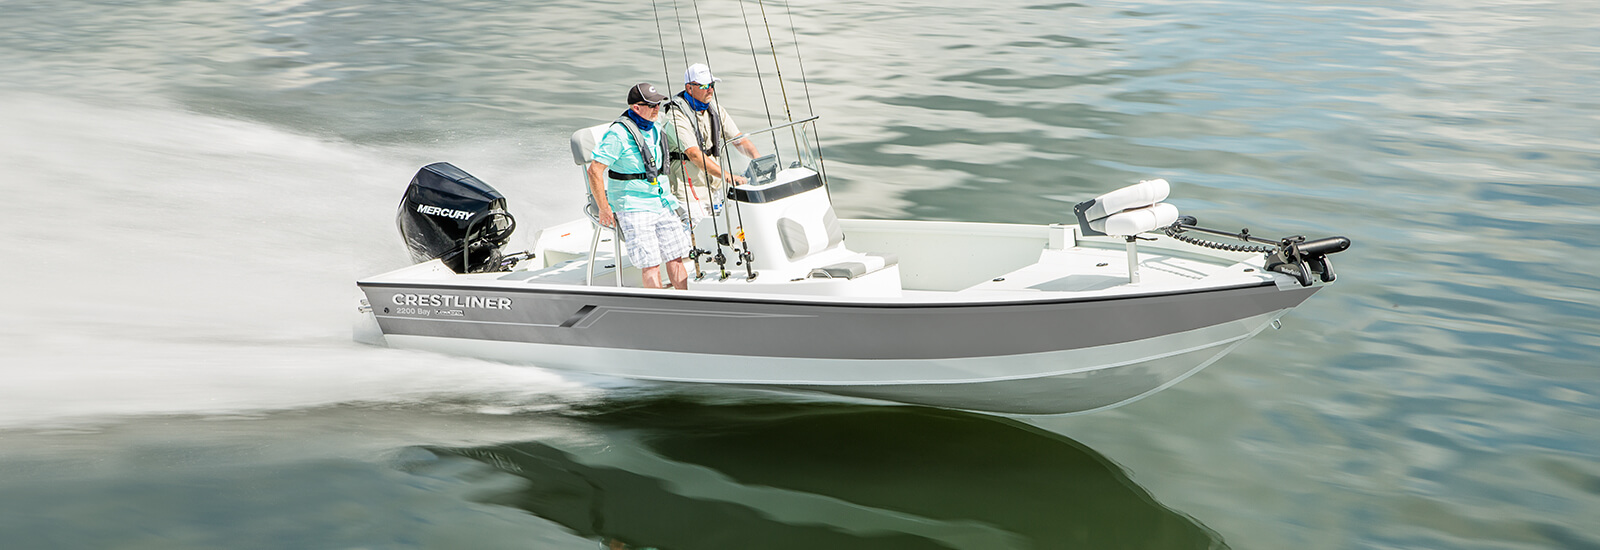 Crestliner 2200 Bay | Best Aluminum Center Console Boat For